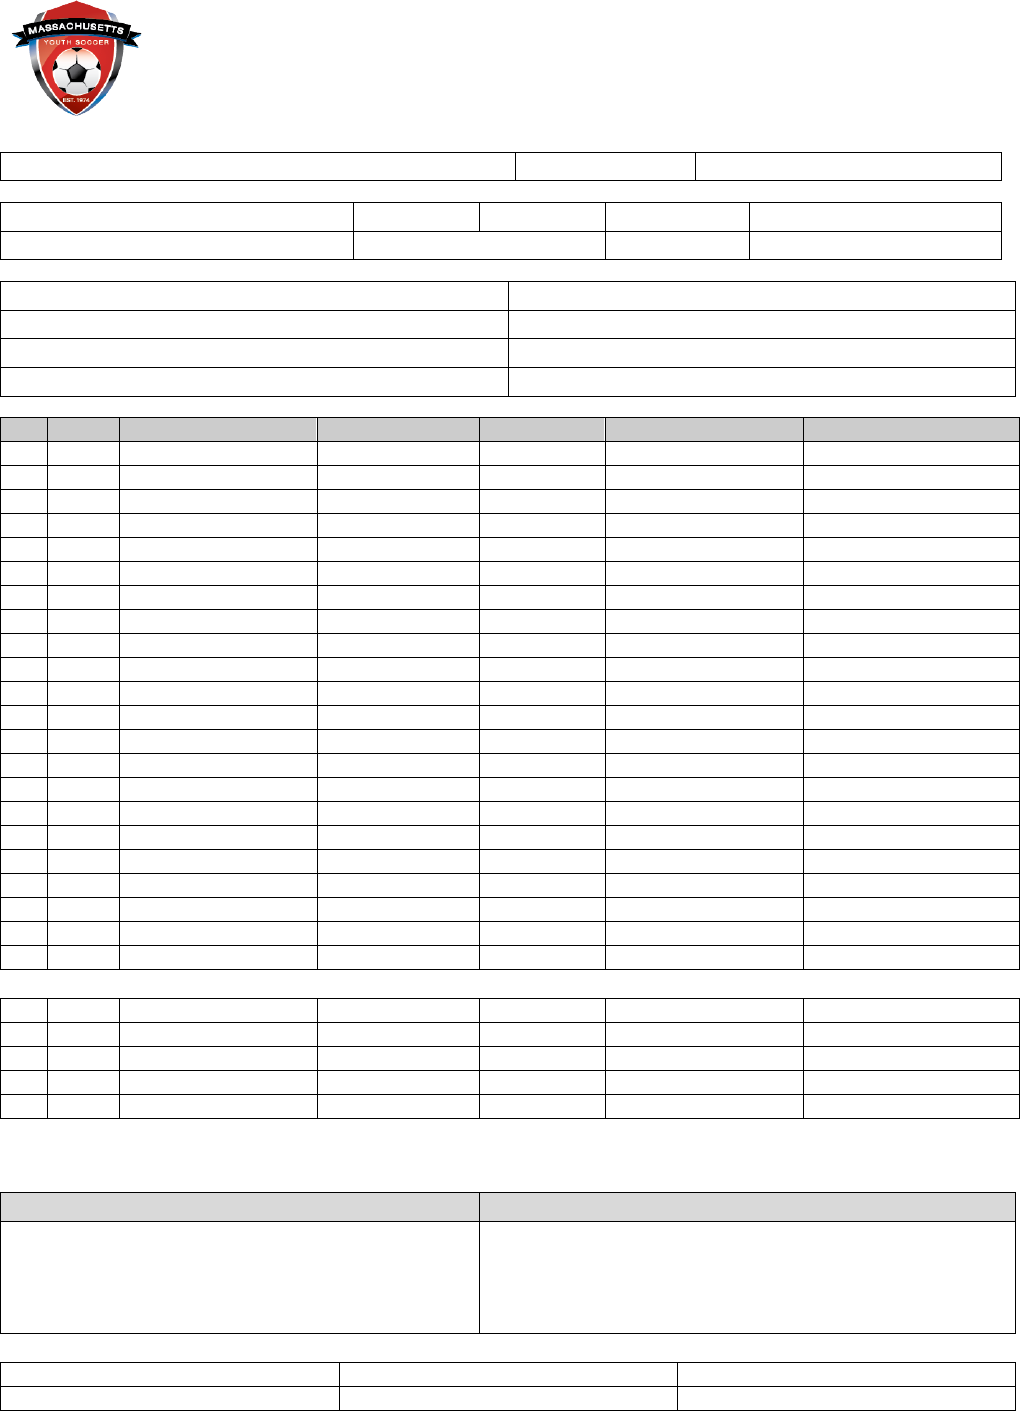 download soccer team roster template for free tidytemplates